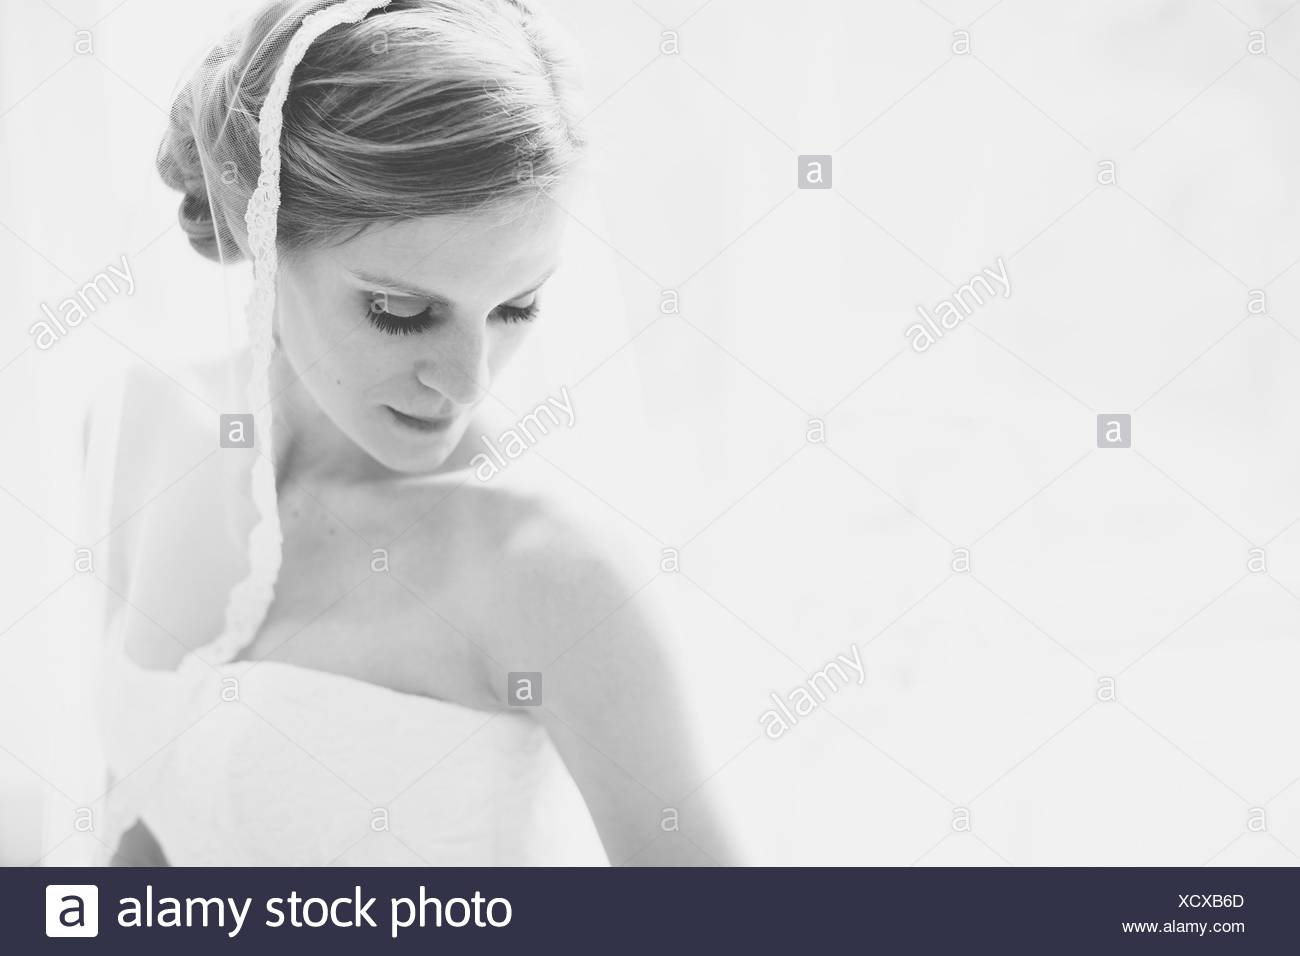 Portrait of a bride at wedding - Stock Image